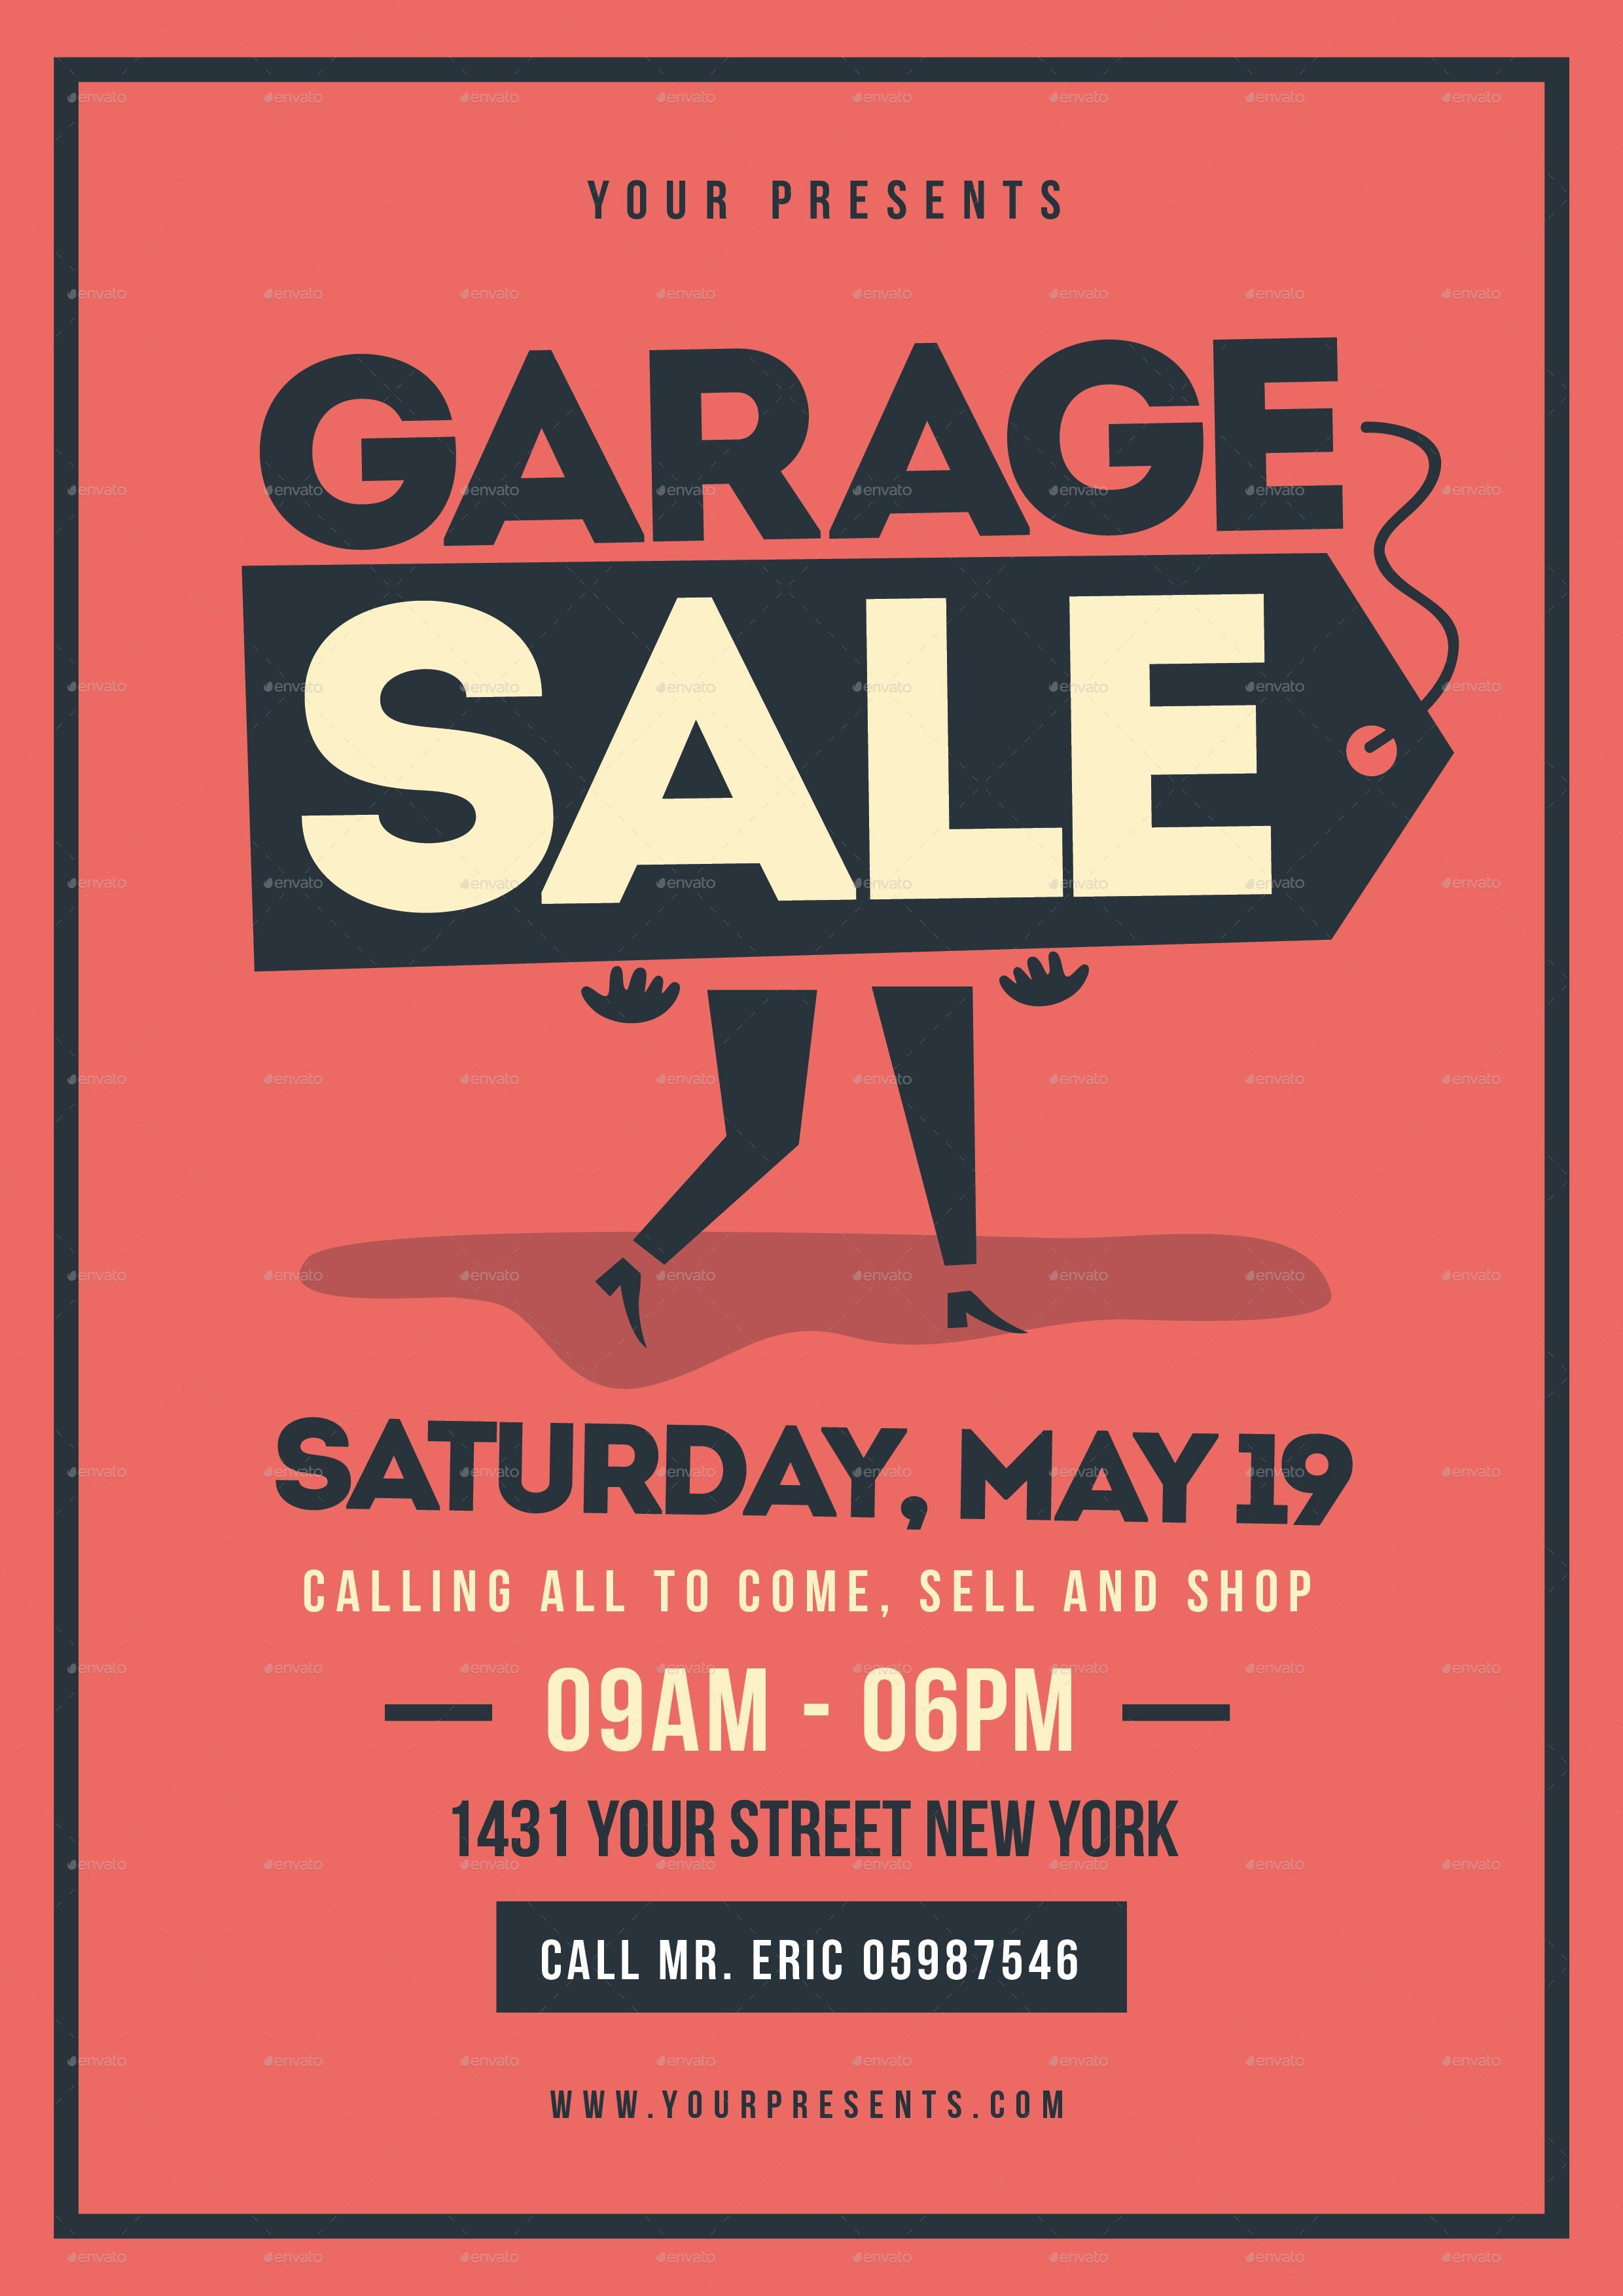 003 Stupendou Garage Sale Sign Template Image  Flyer Microsoft Word Community Yard Free RummageFull